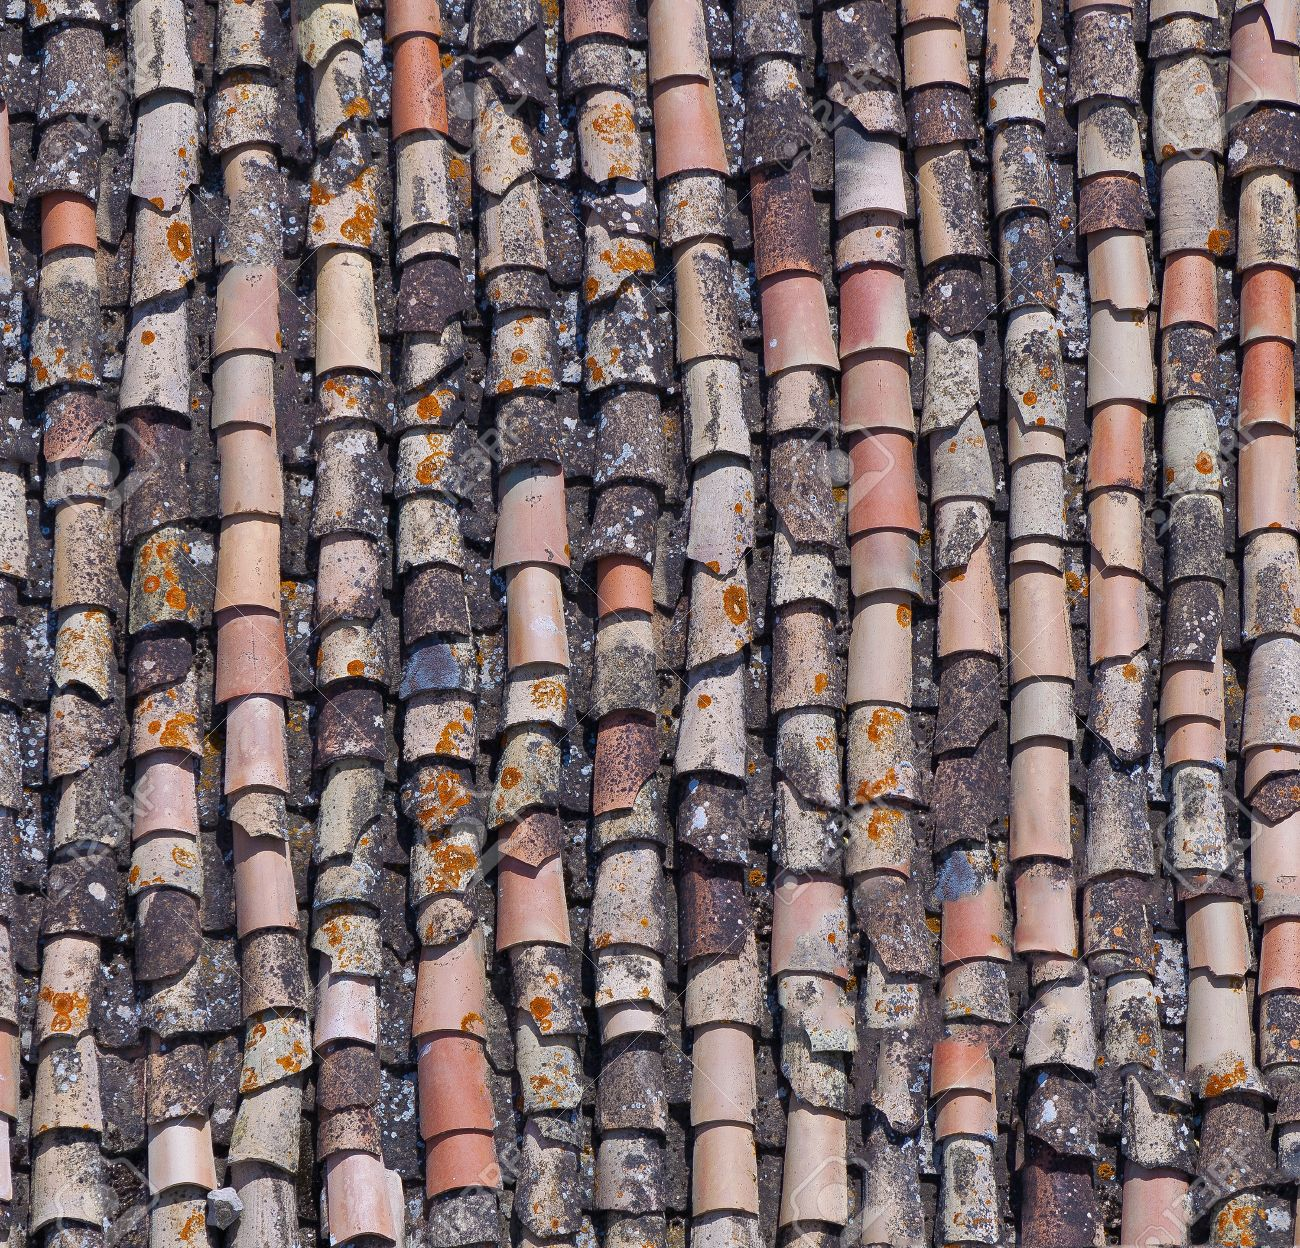 clay roof: old roof tile close-up texture